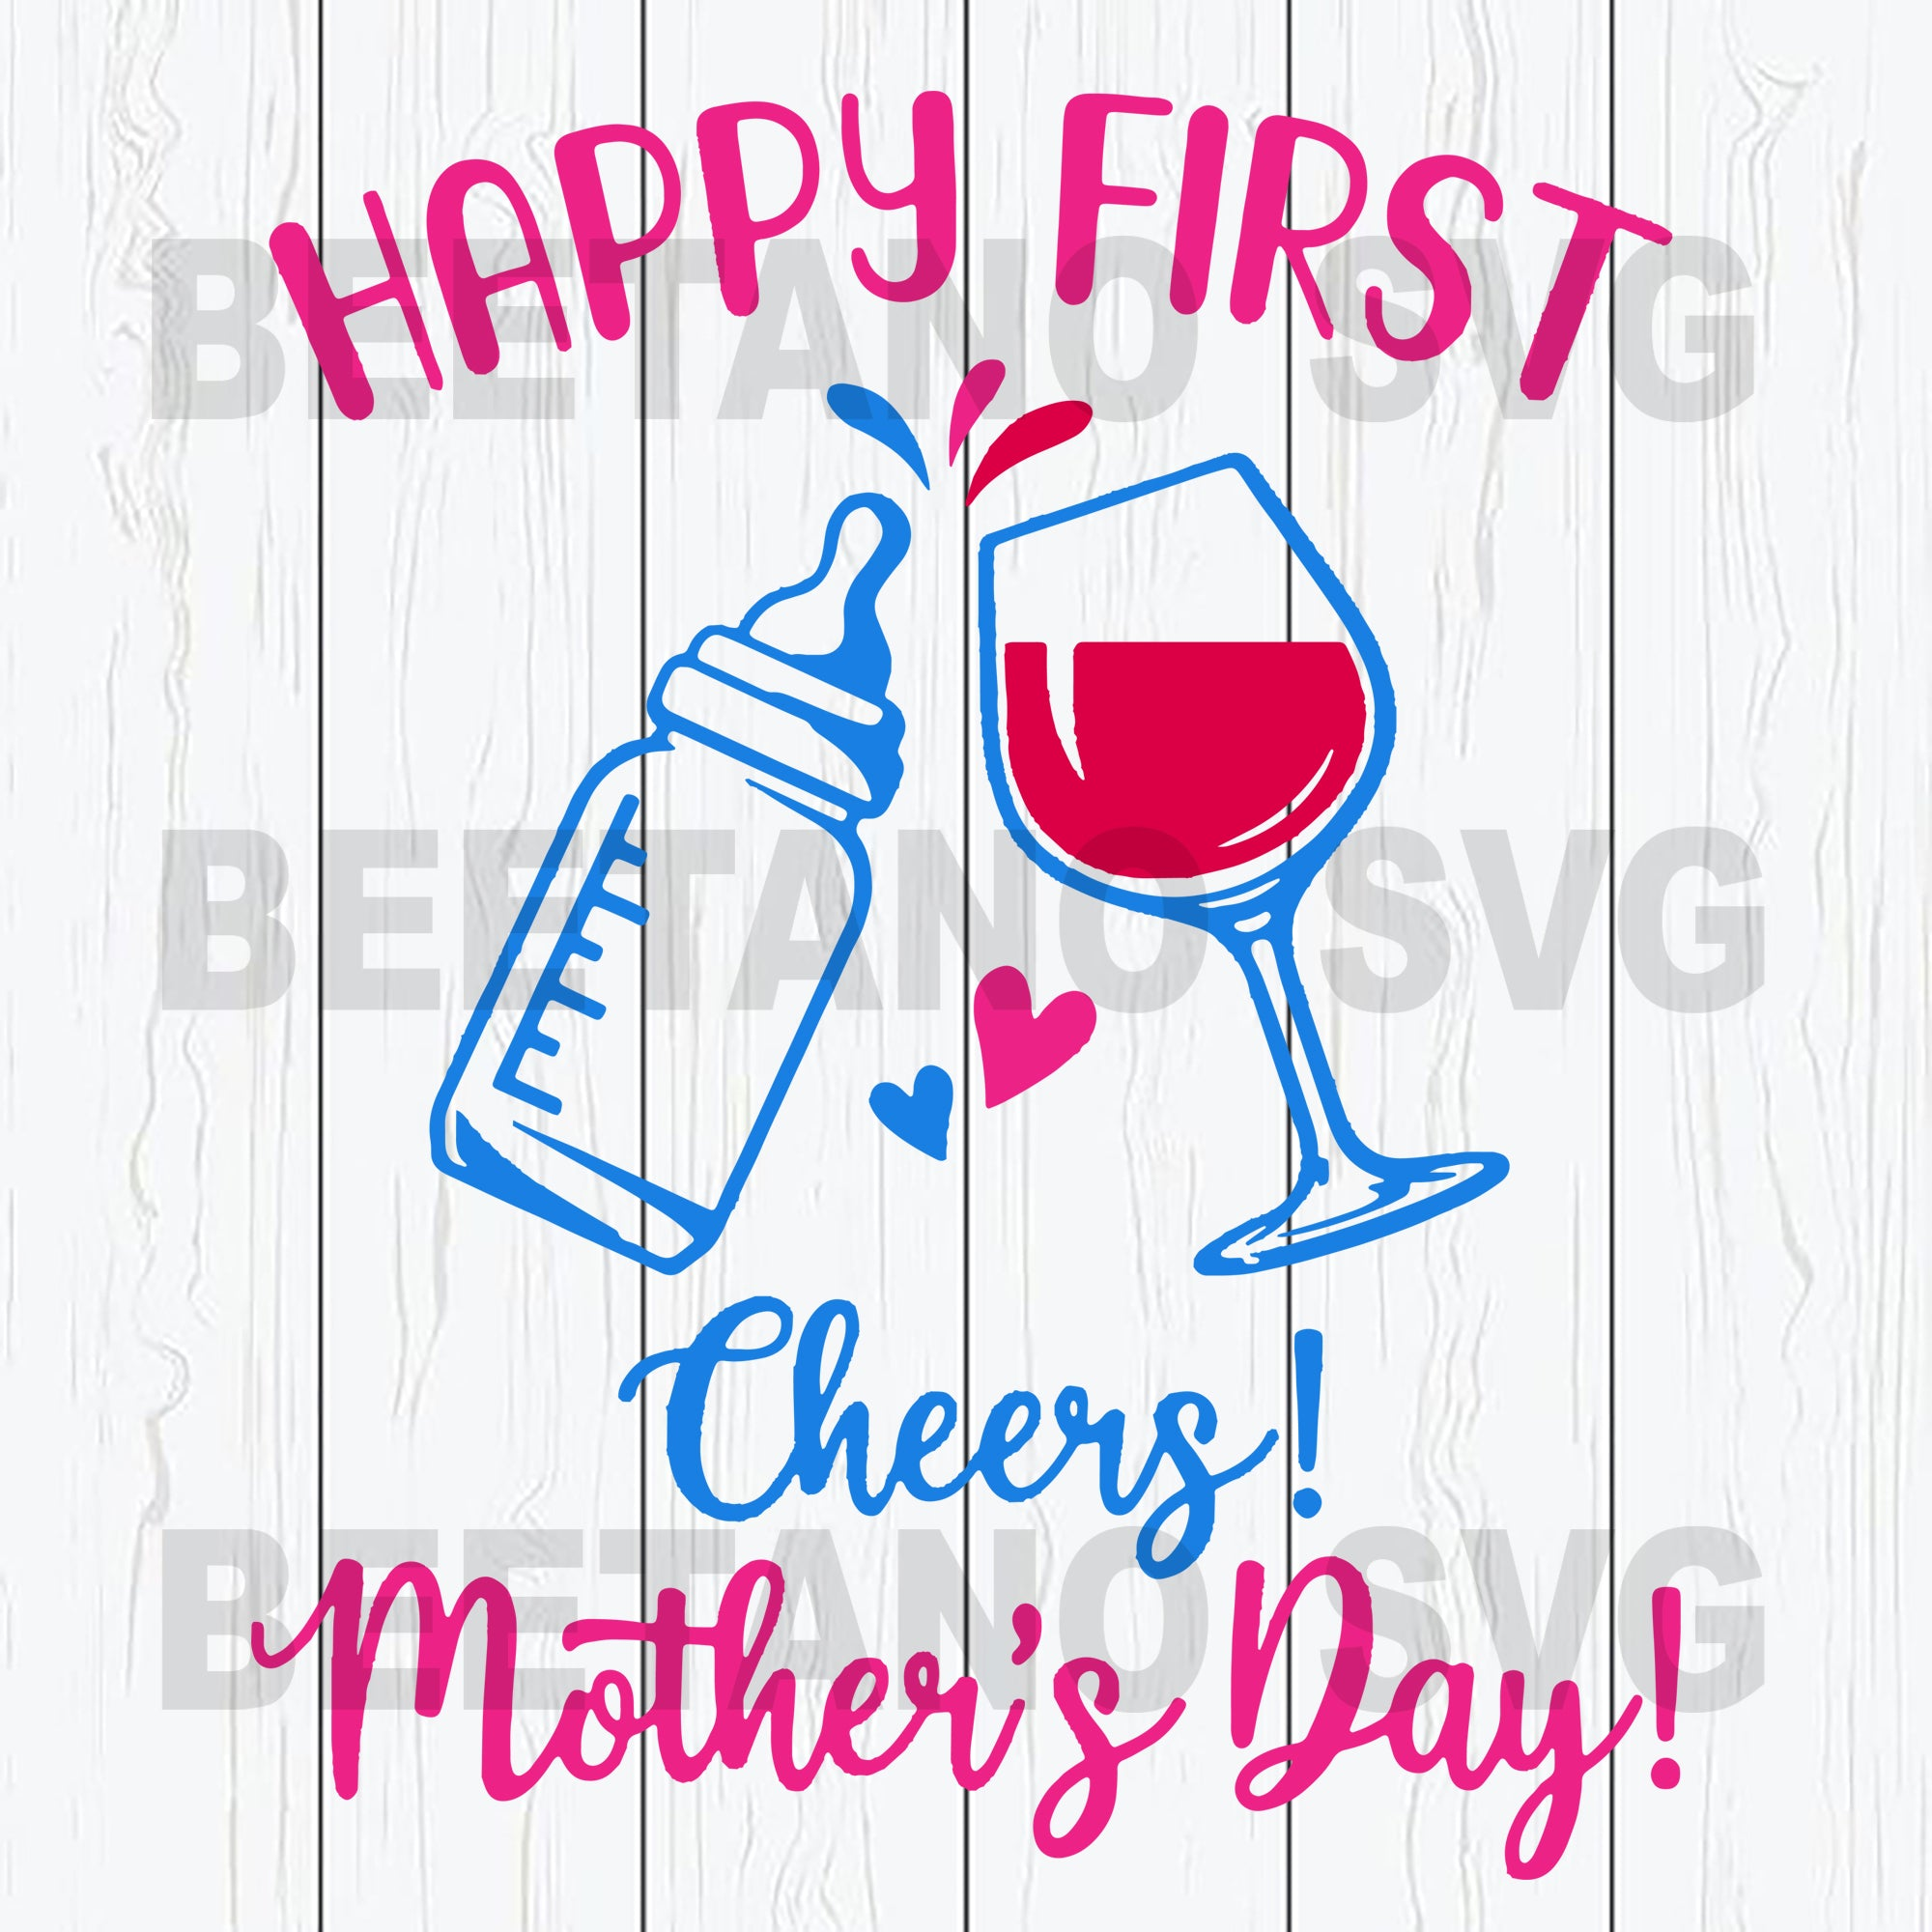 Happy First Cheers Mother's Day